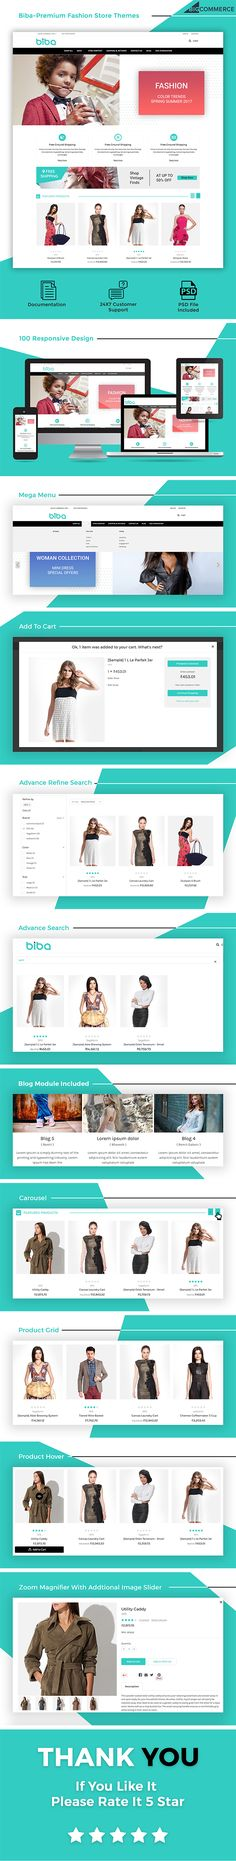 Overview     Biba  – Multipurpose Stencil Bigcommerce Theme is a modern, clean and professional BigCommerce theme is fully responsive, it looks stunning on all types of screens and device...